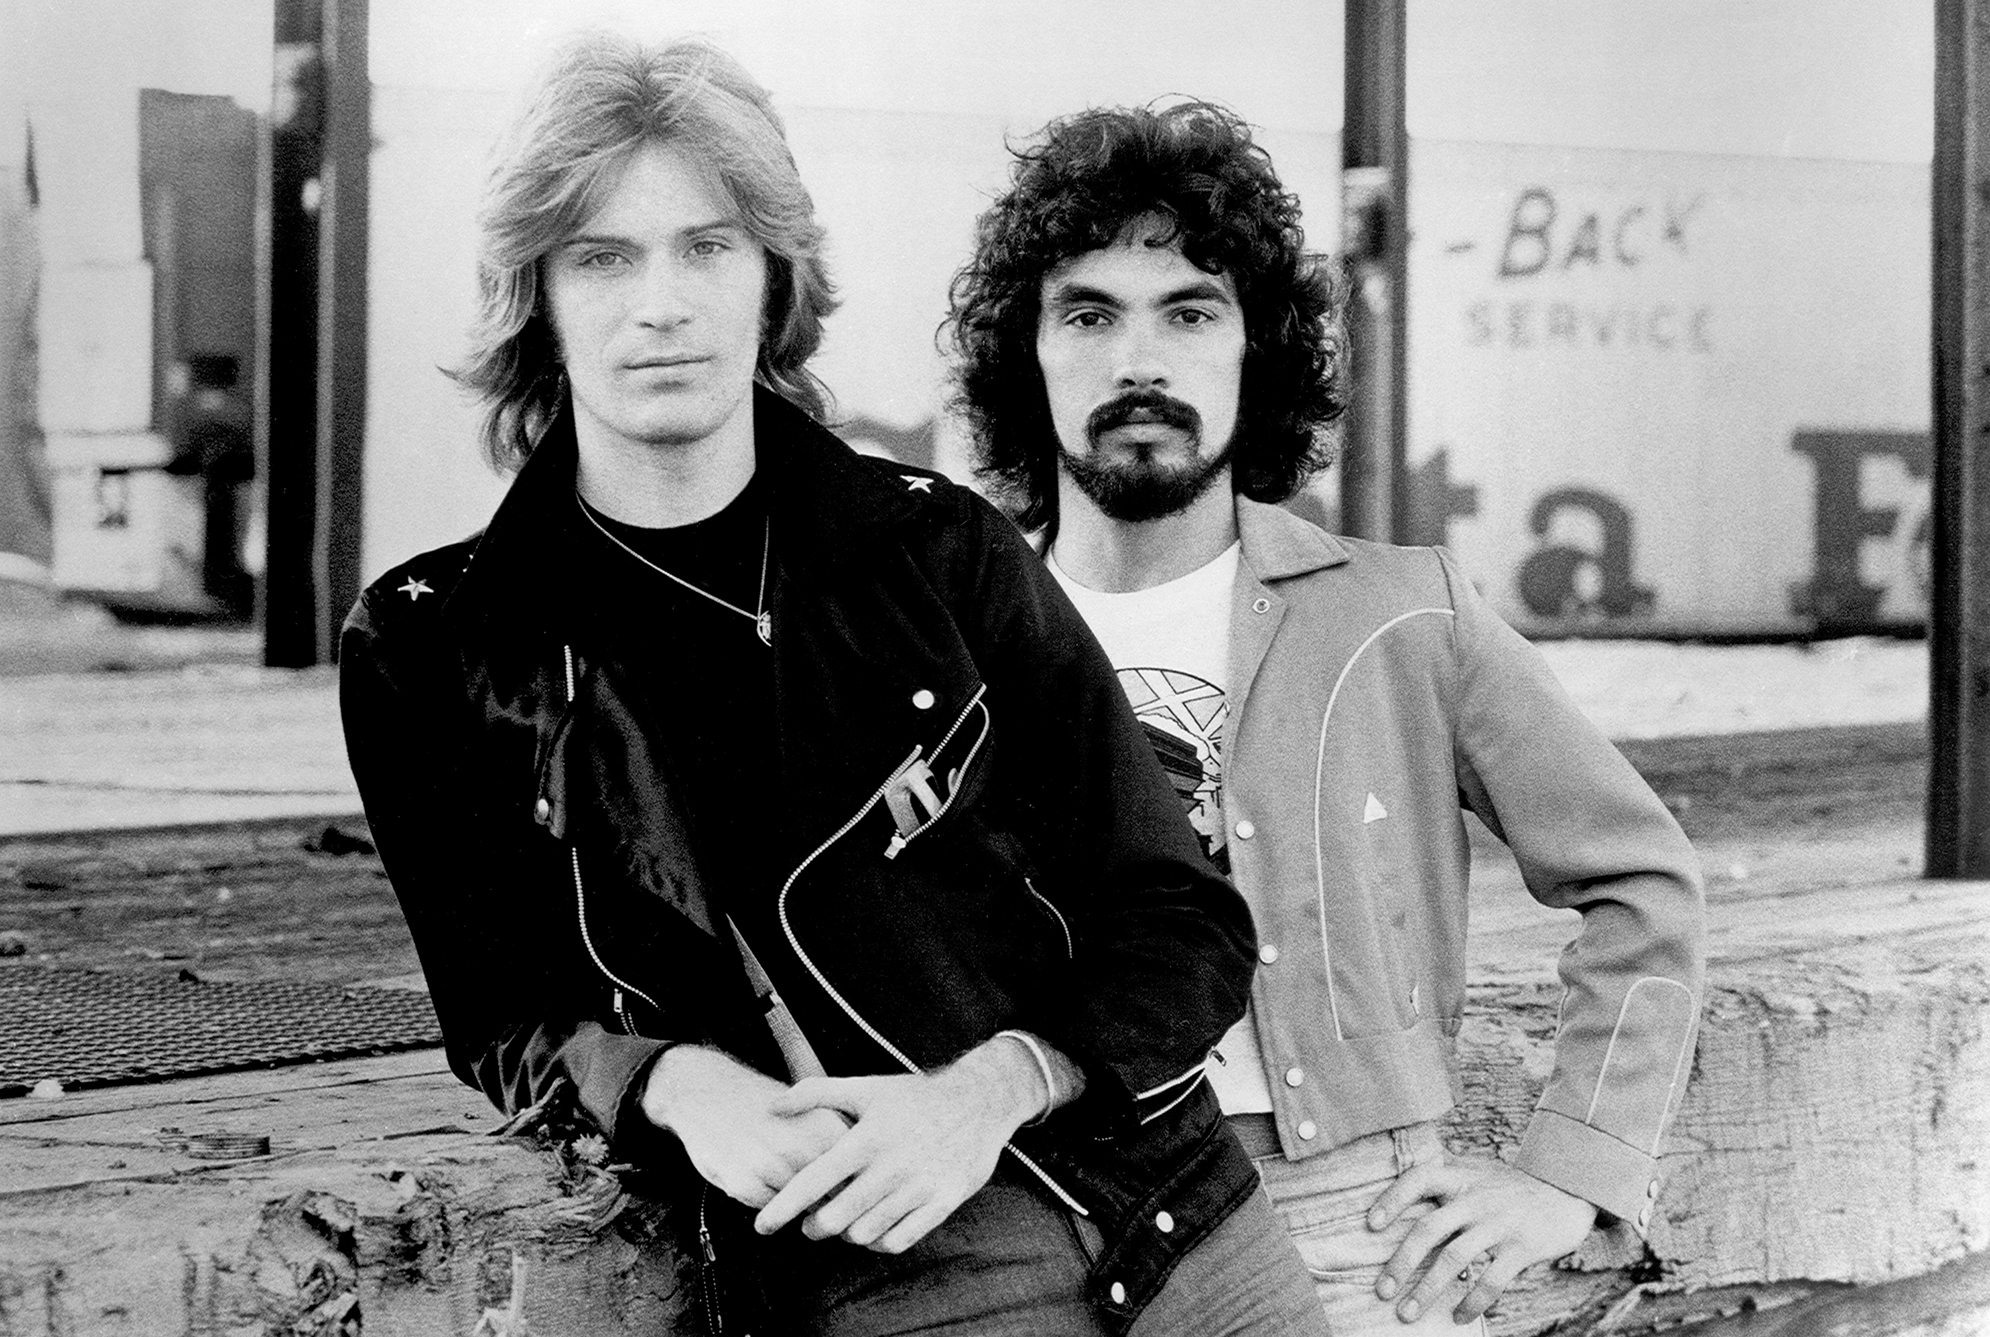 Daryl Hall & John Oates - Sara Smile / Do What You Want, Be What You Are